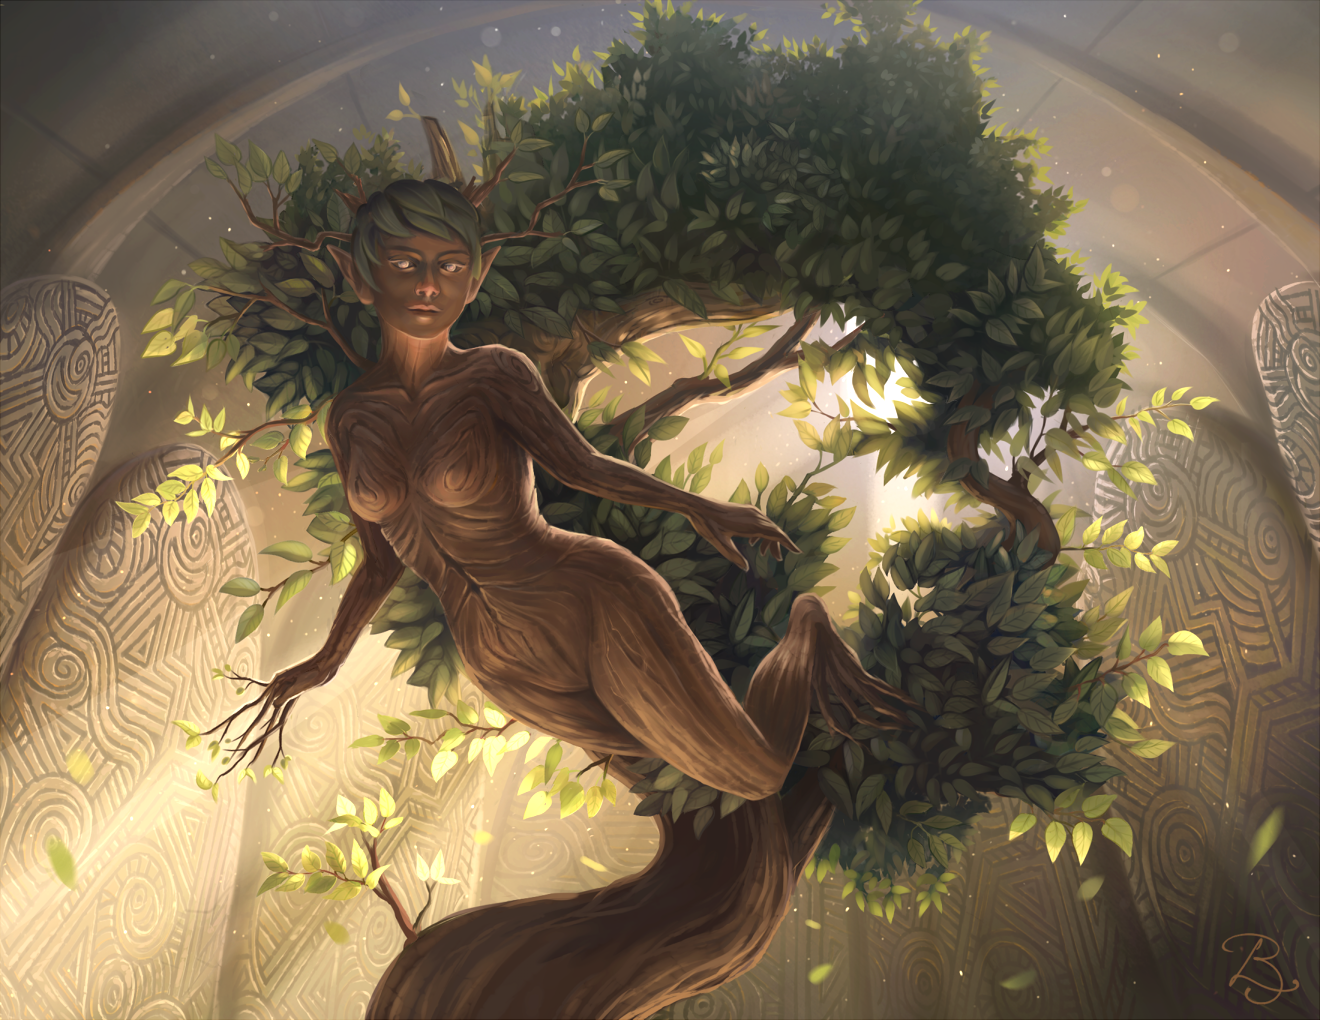 http://orig05.deviantart.net/fd69/f/2017/111/9/7/omicontest__lund___goddess_of_nature_by_selven7-db6ftmm.png